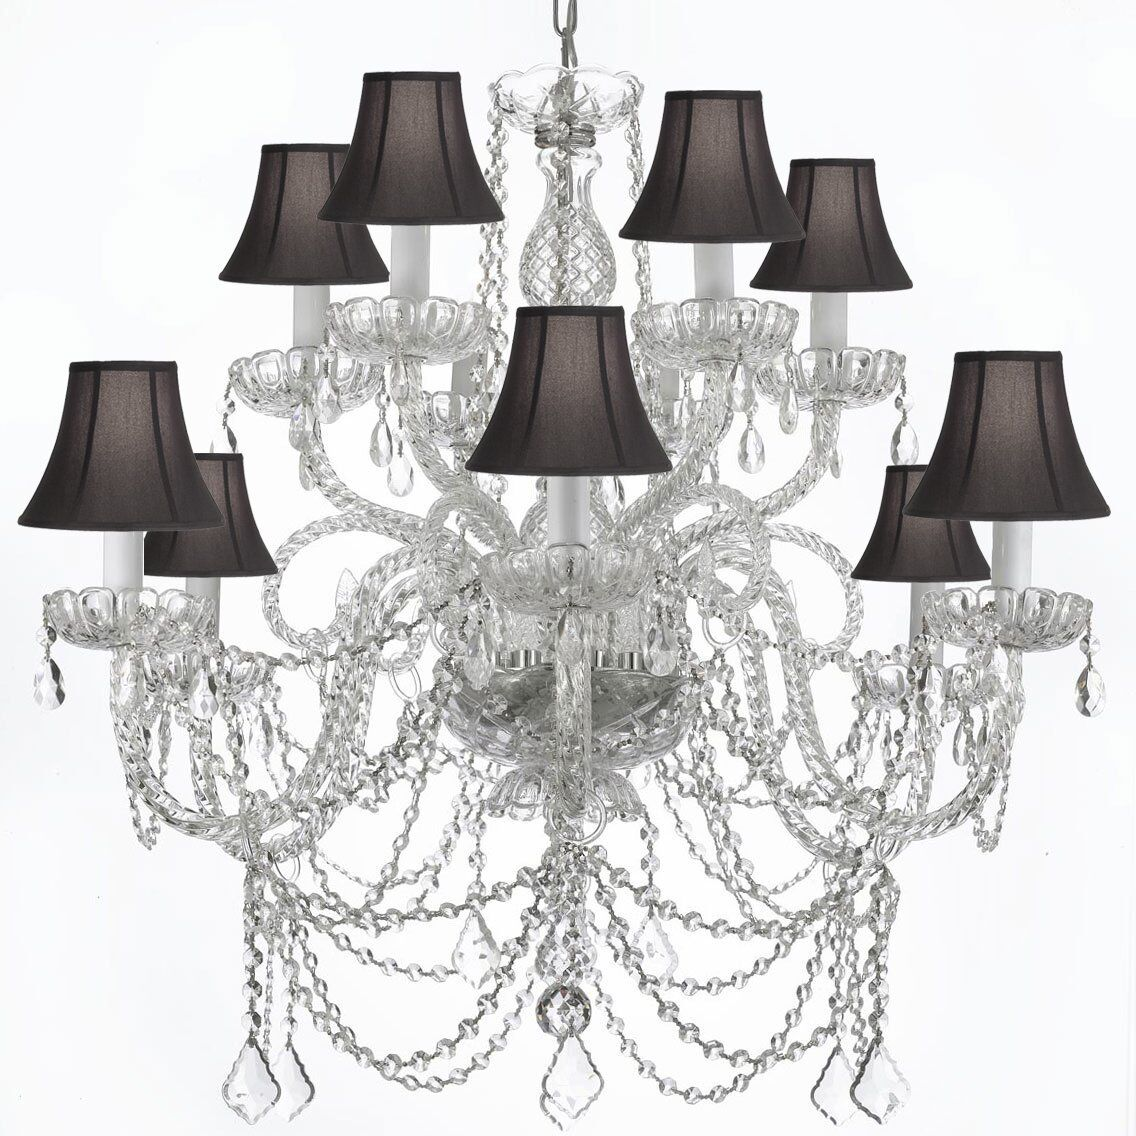 Bowey 12-Light Black Shaded Chandelier